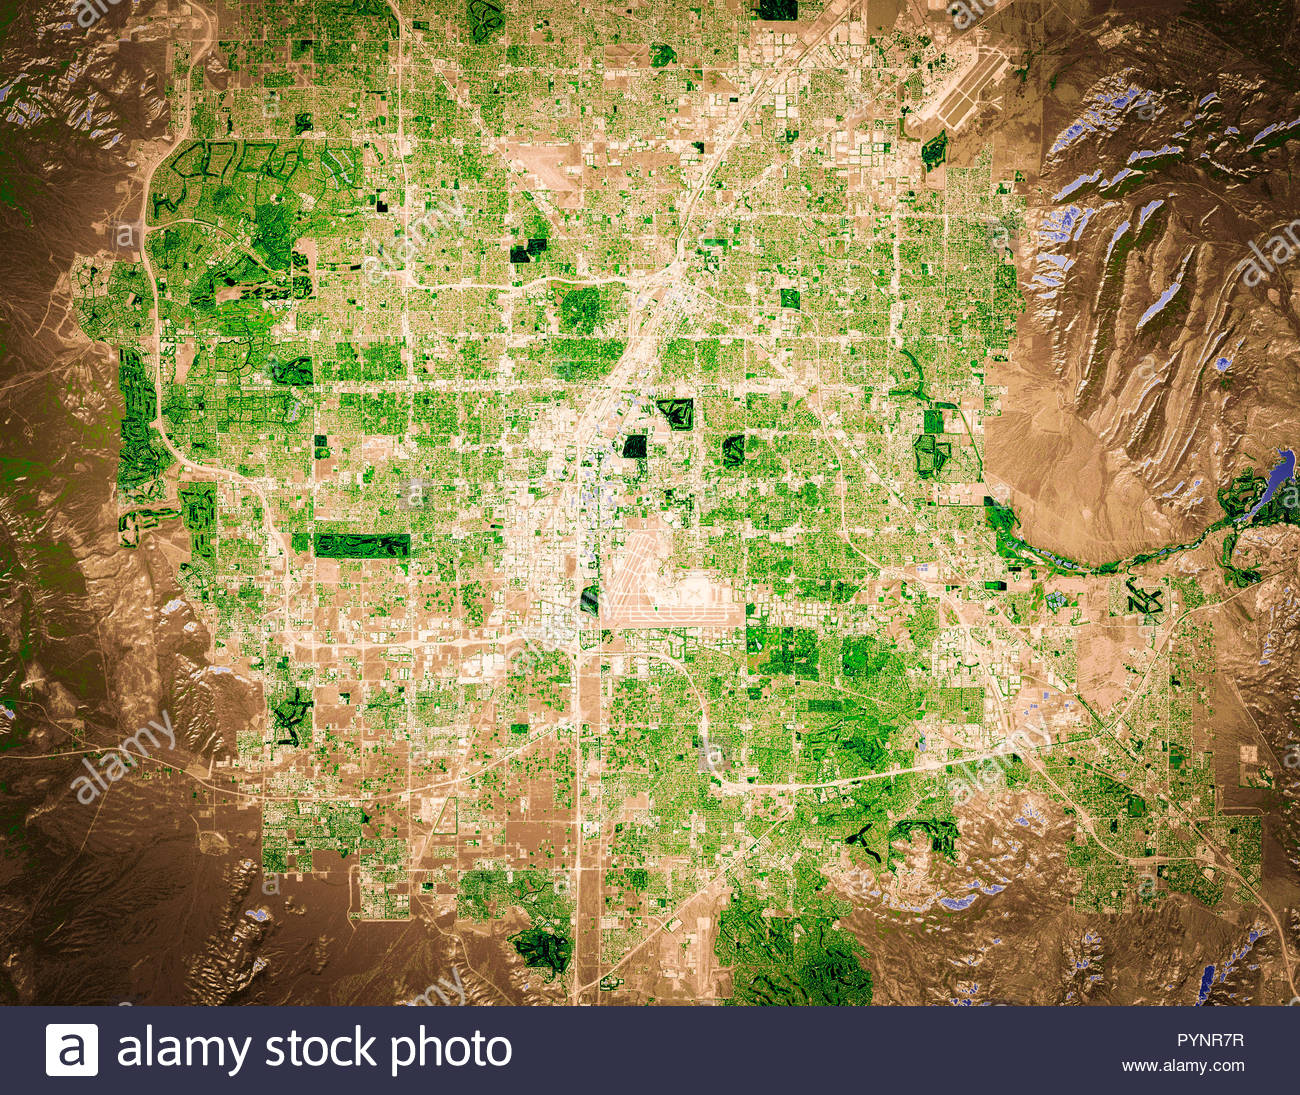 City Nevada Satellite Image Stock Photos & City Nevada ... on great basin college elko nevada, paradise valley nevada, atlas of nevada, google state of nevada, las vegas nevada, detailed map nevada, weather of nevada, lowest elevation in nevada, city of nevada, winnemucca nevada, united states of nevada, attractions of nevada, aerial map nevada, satellite aerial maps, state flag of nevada, satellite view of nevada, temperature of nevada, home of nevada,